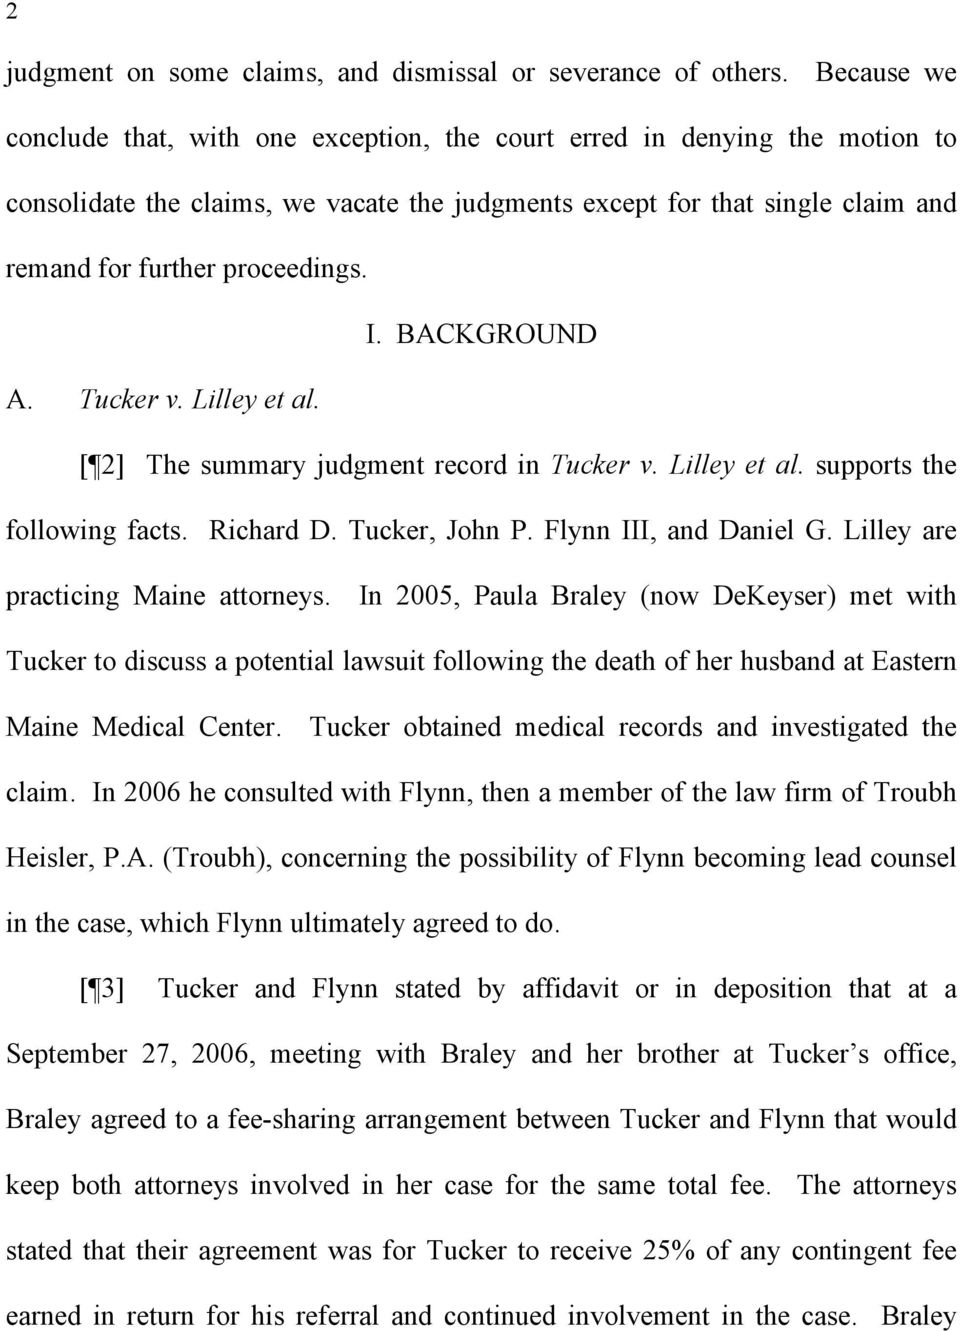 I. BACKGROUND A. Tucker v. Lilley et al. [ 2] The summary judgment record in Tucker v. Lilley et al. supports the following facts. Richard D. Tucker, John P. Flynn III, and Daniel G.